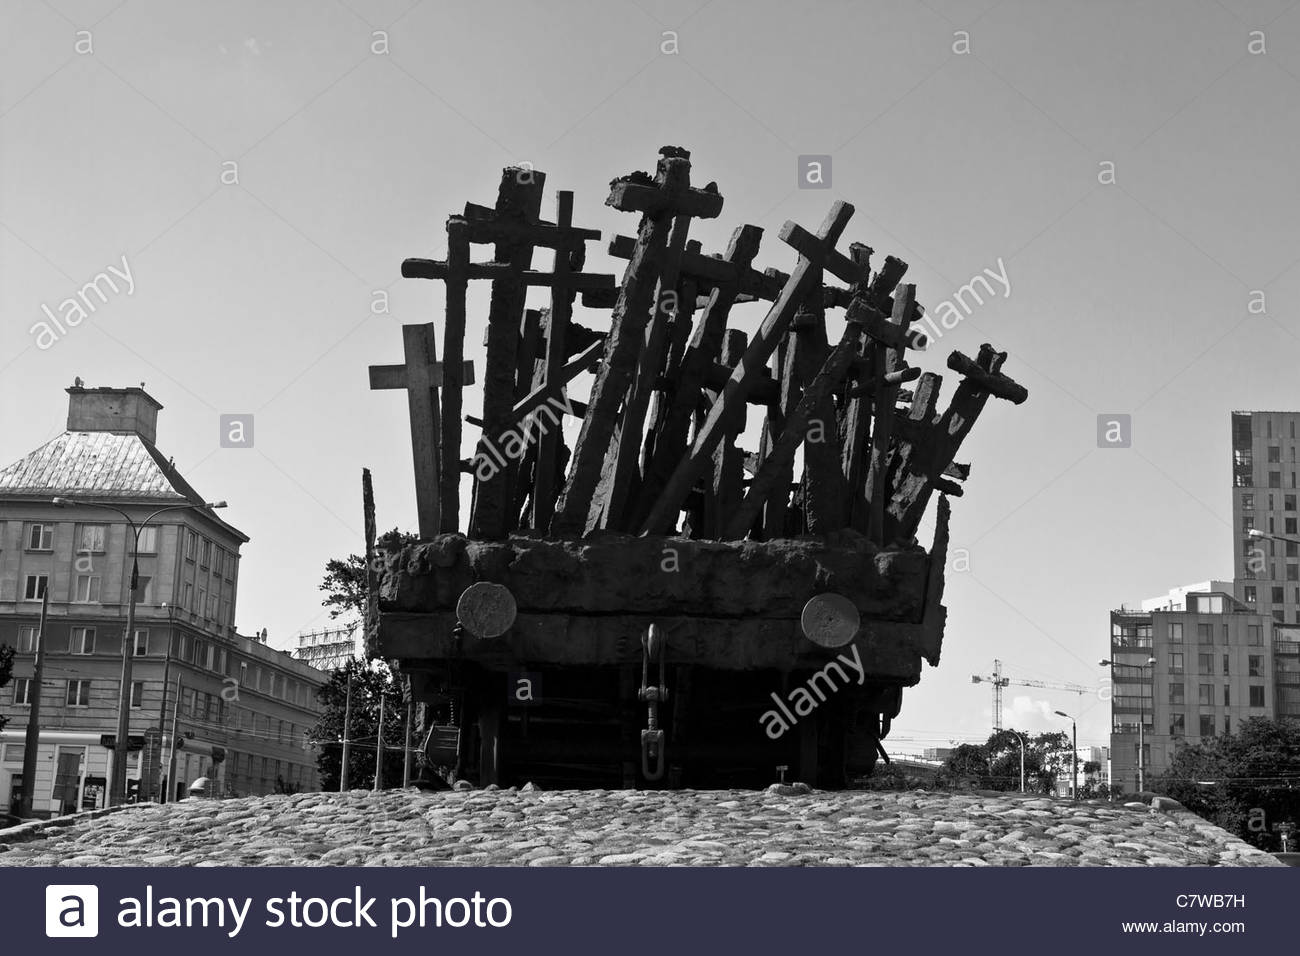 Monument for the fallen and murdered people in the east Stock Photo